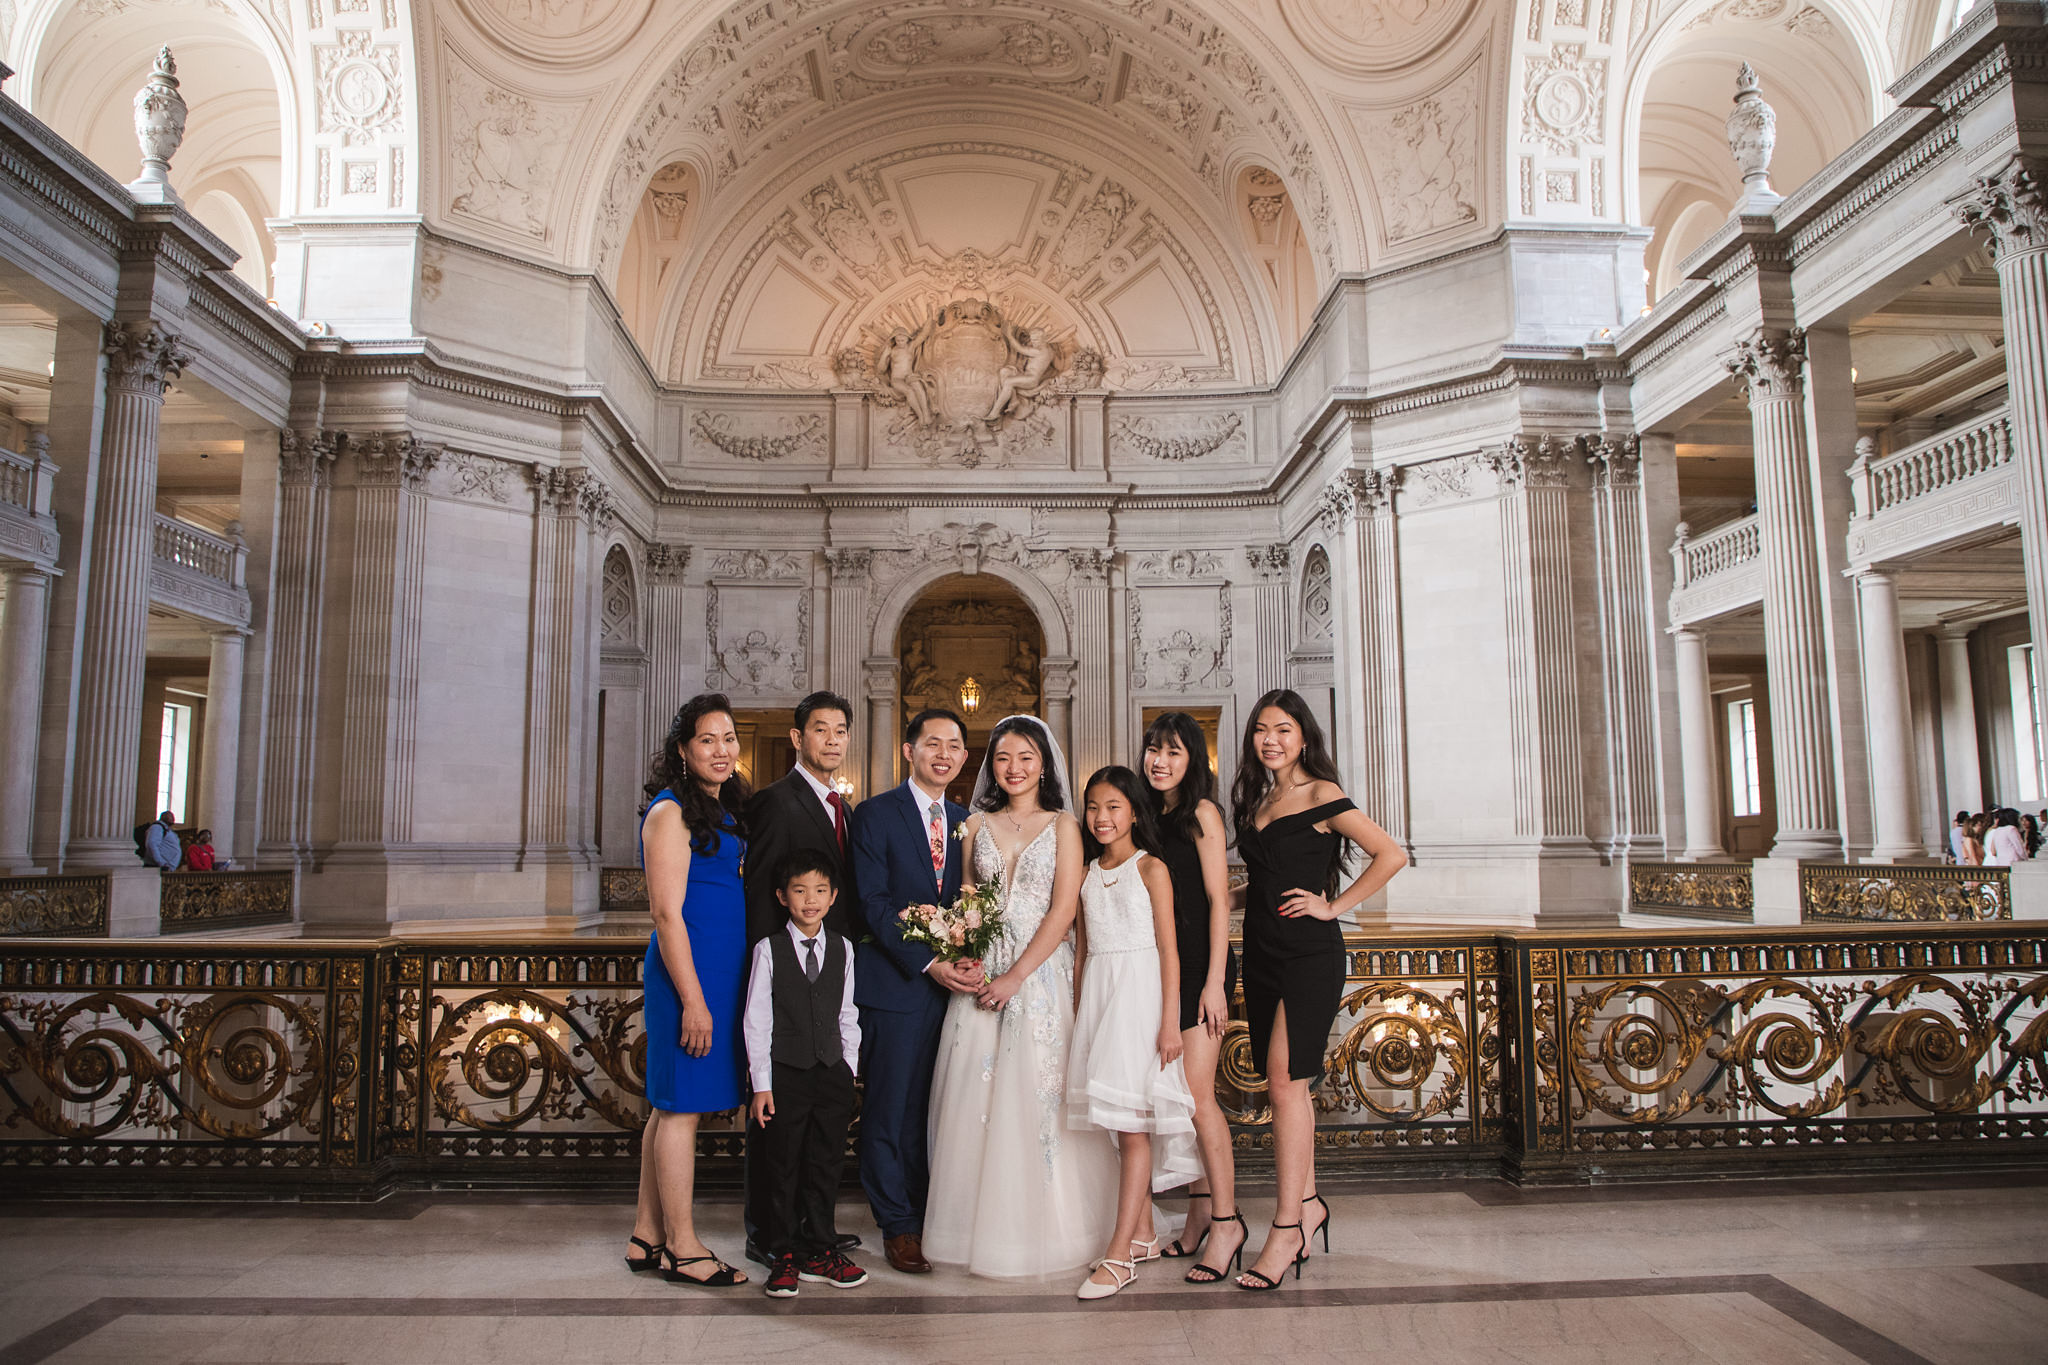 20190326-LouvandMuyWeddingPhotosWebOptimized-432.jpg